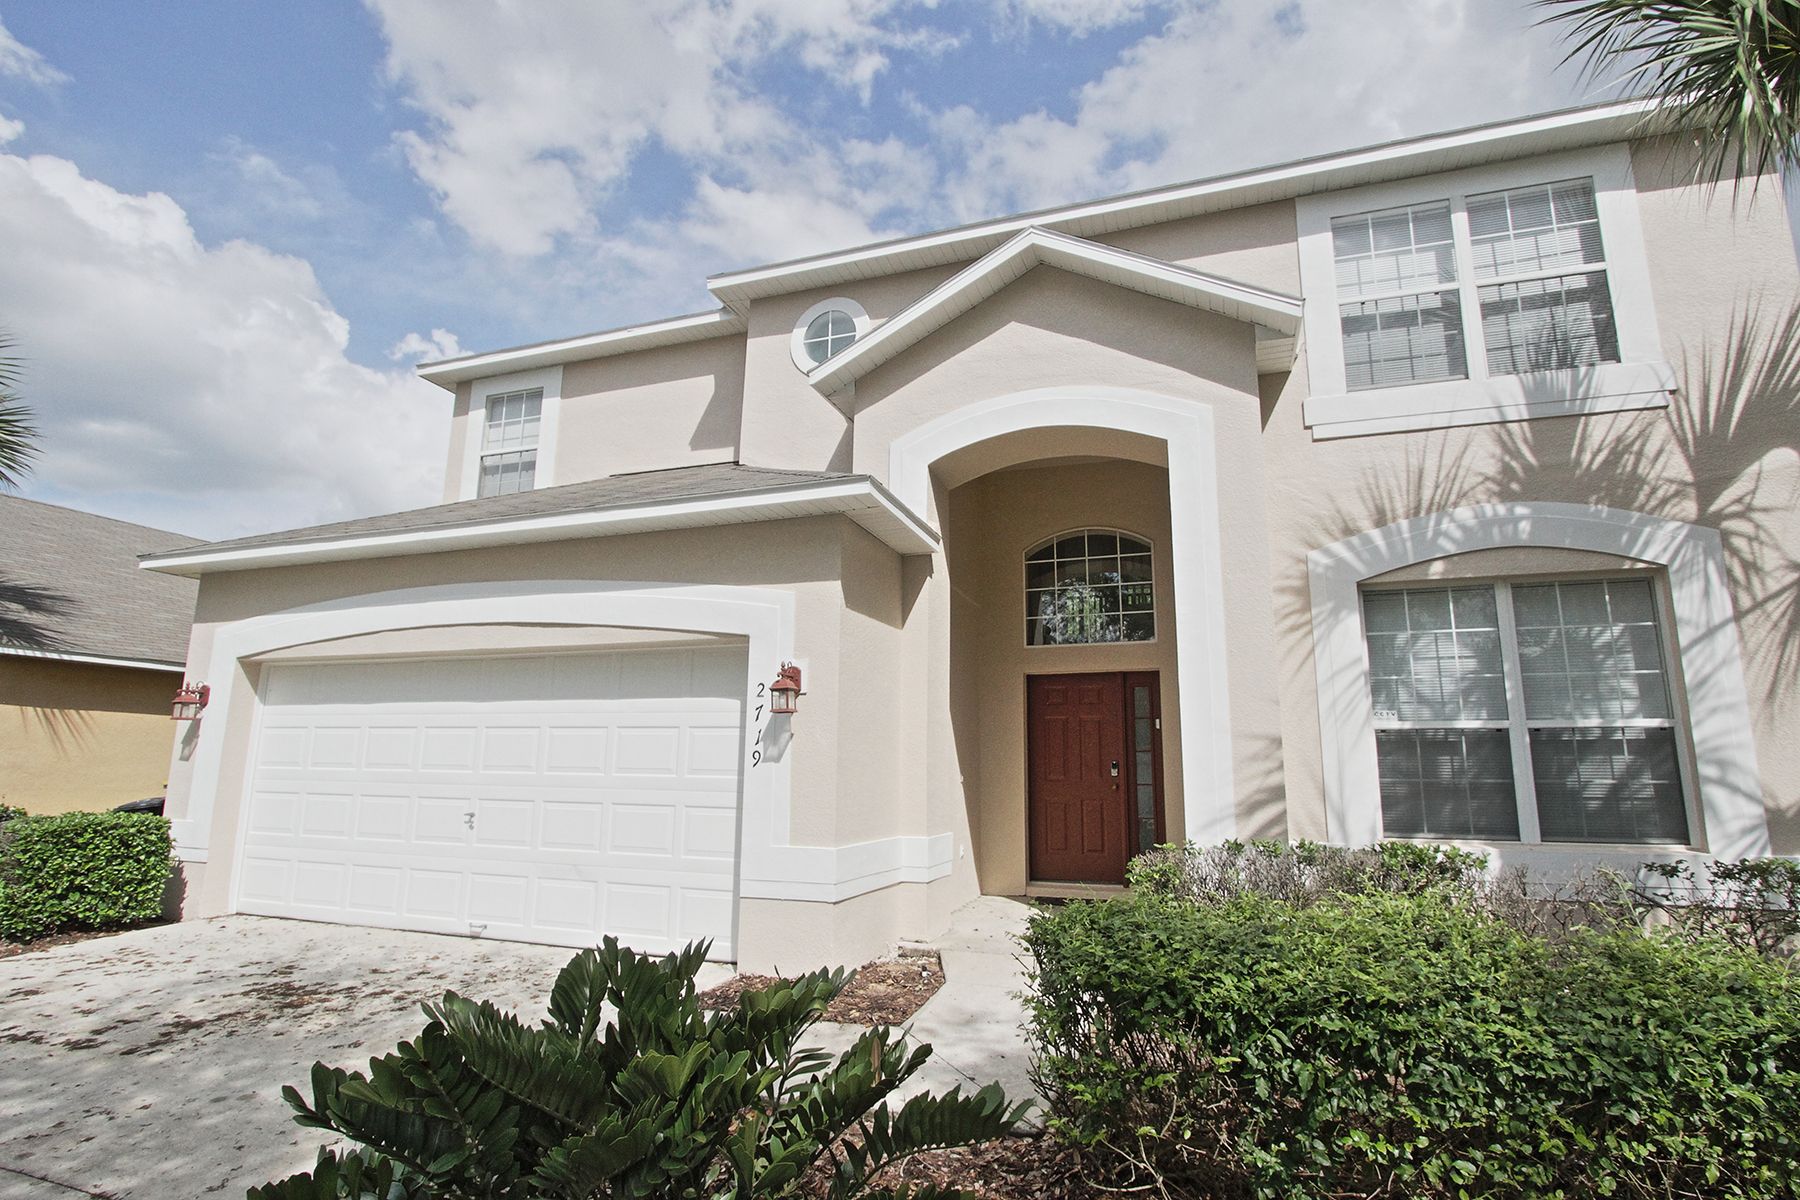 Single Family Home for Sale at KISSIMMEE,FLORIDA 2719 Lido Key Dr Kissimmee, Florida 34747 United States